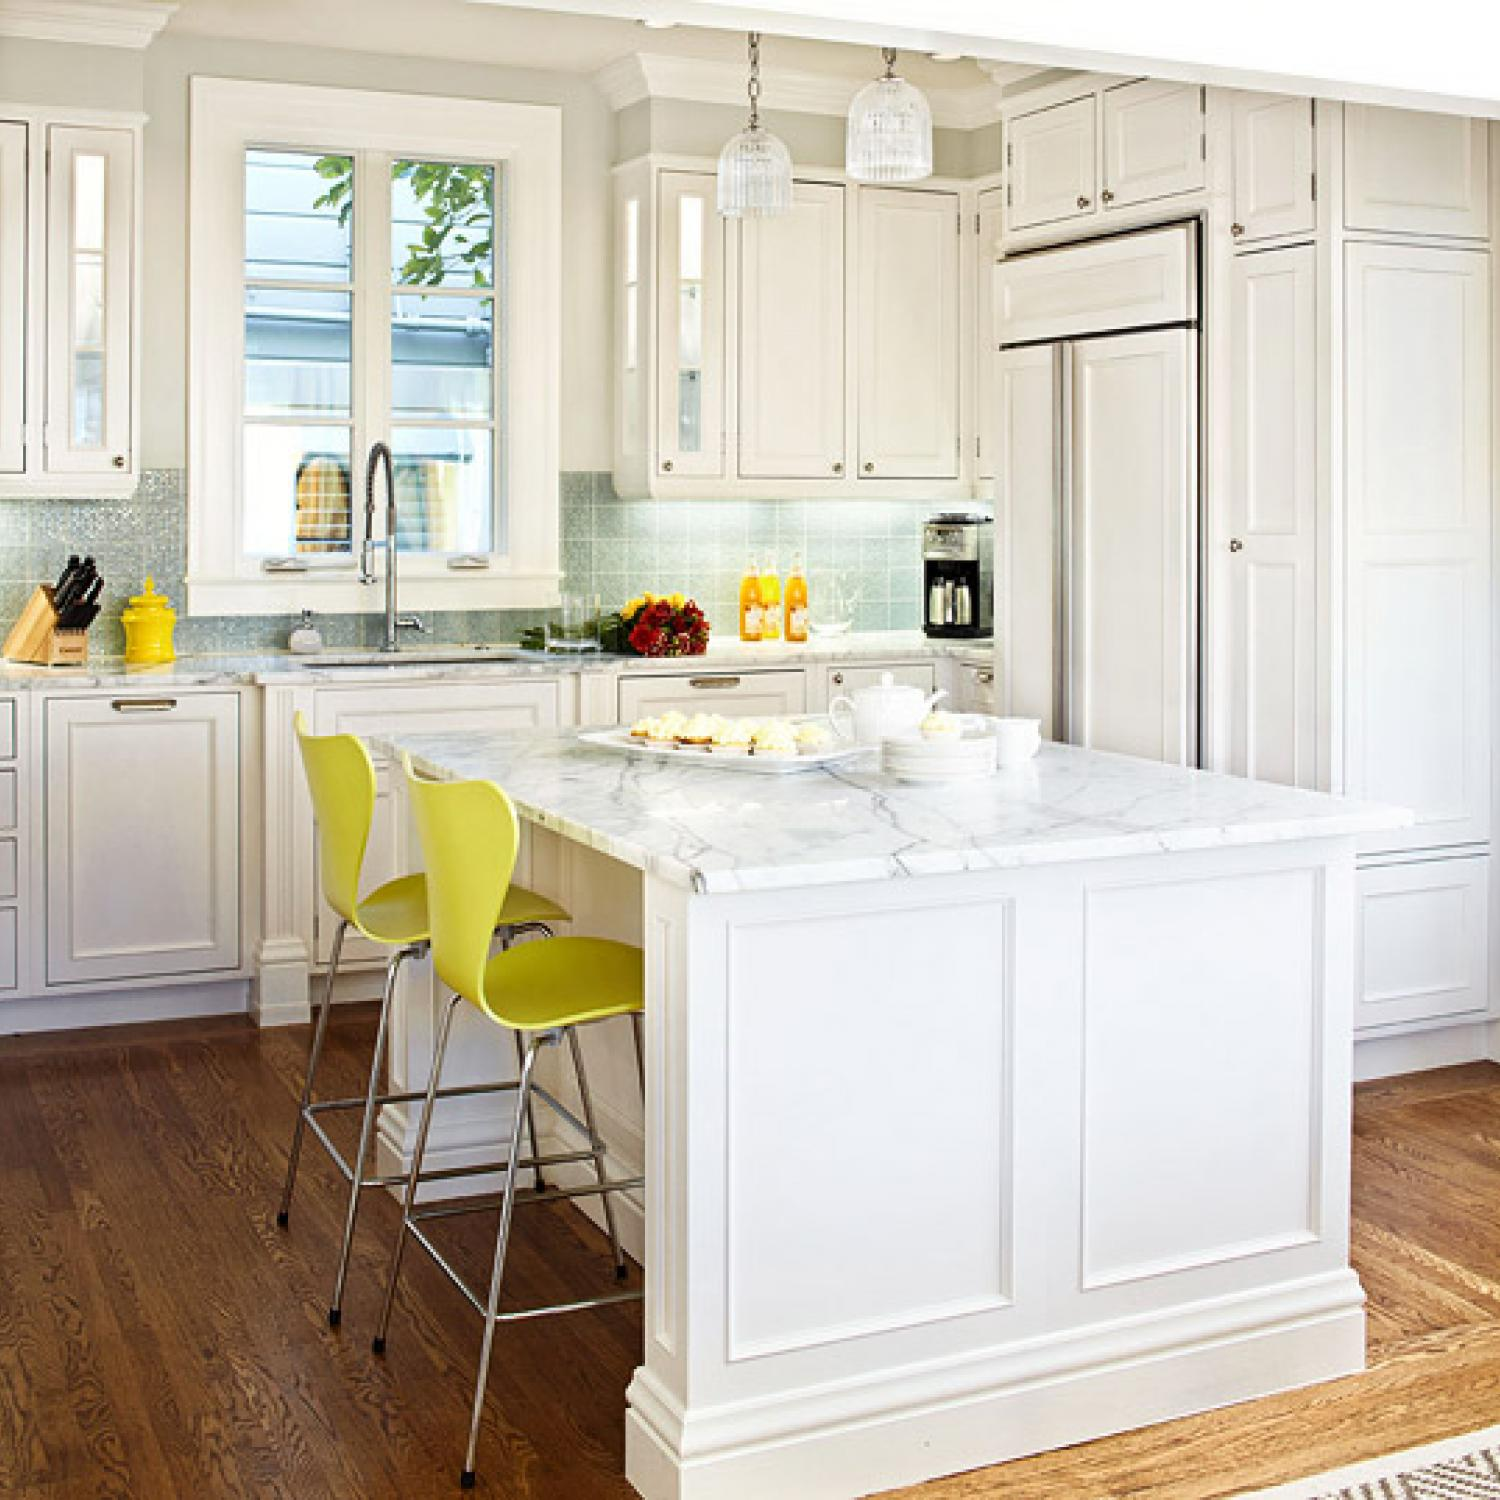 Design ideas for white kitchens traditional home for Beautiful white kitchen designs